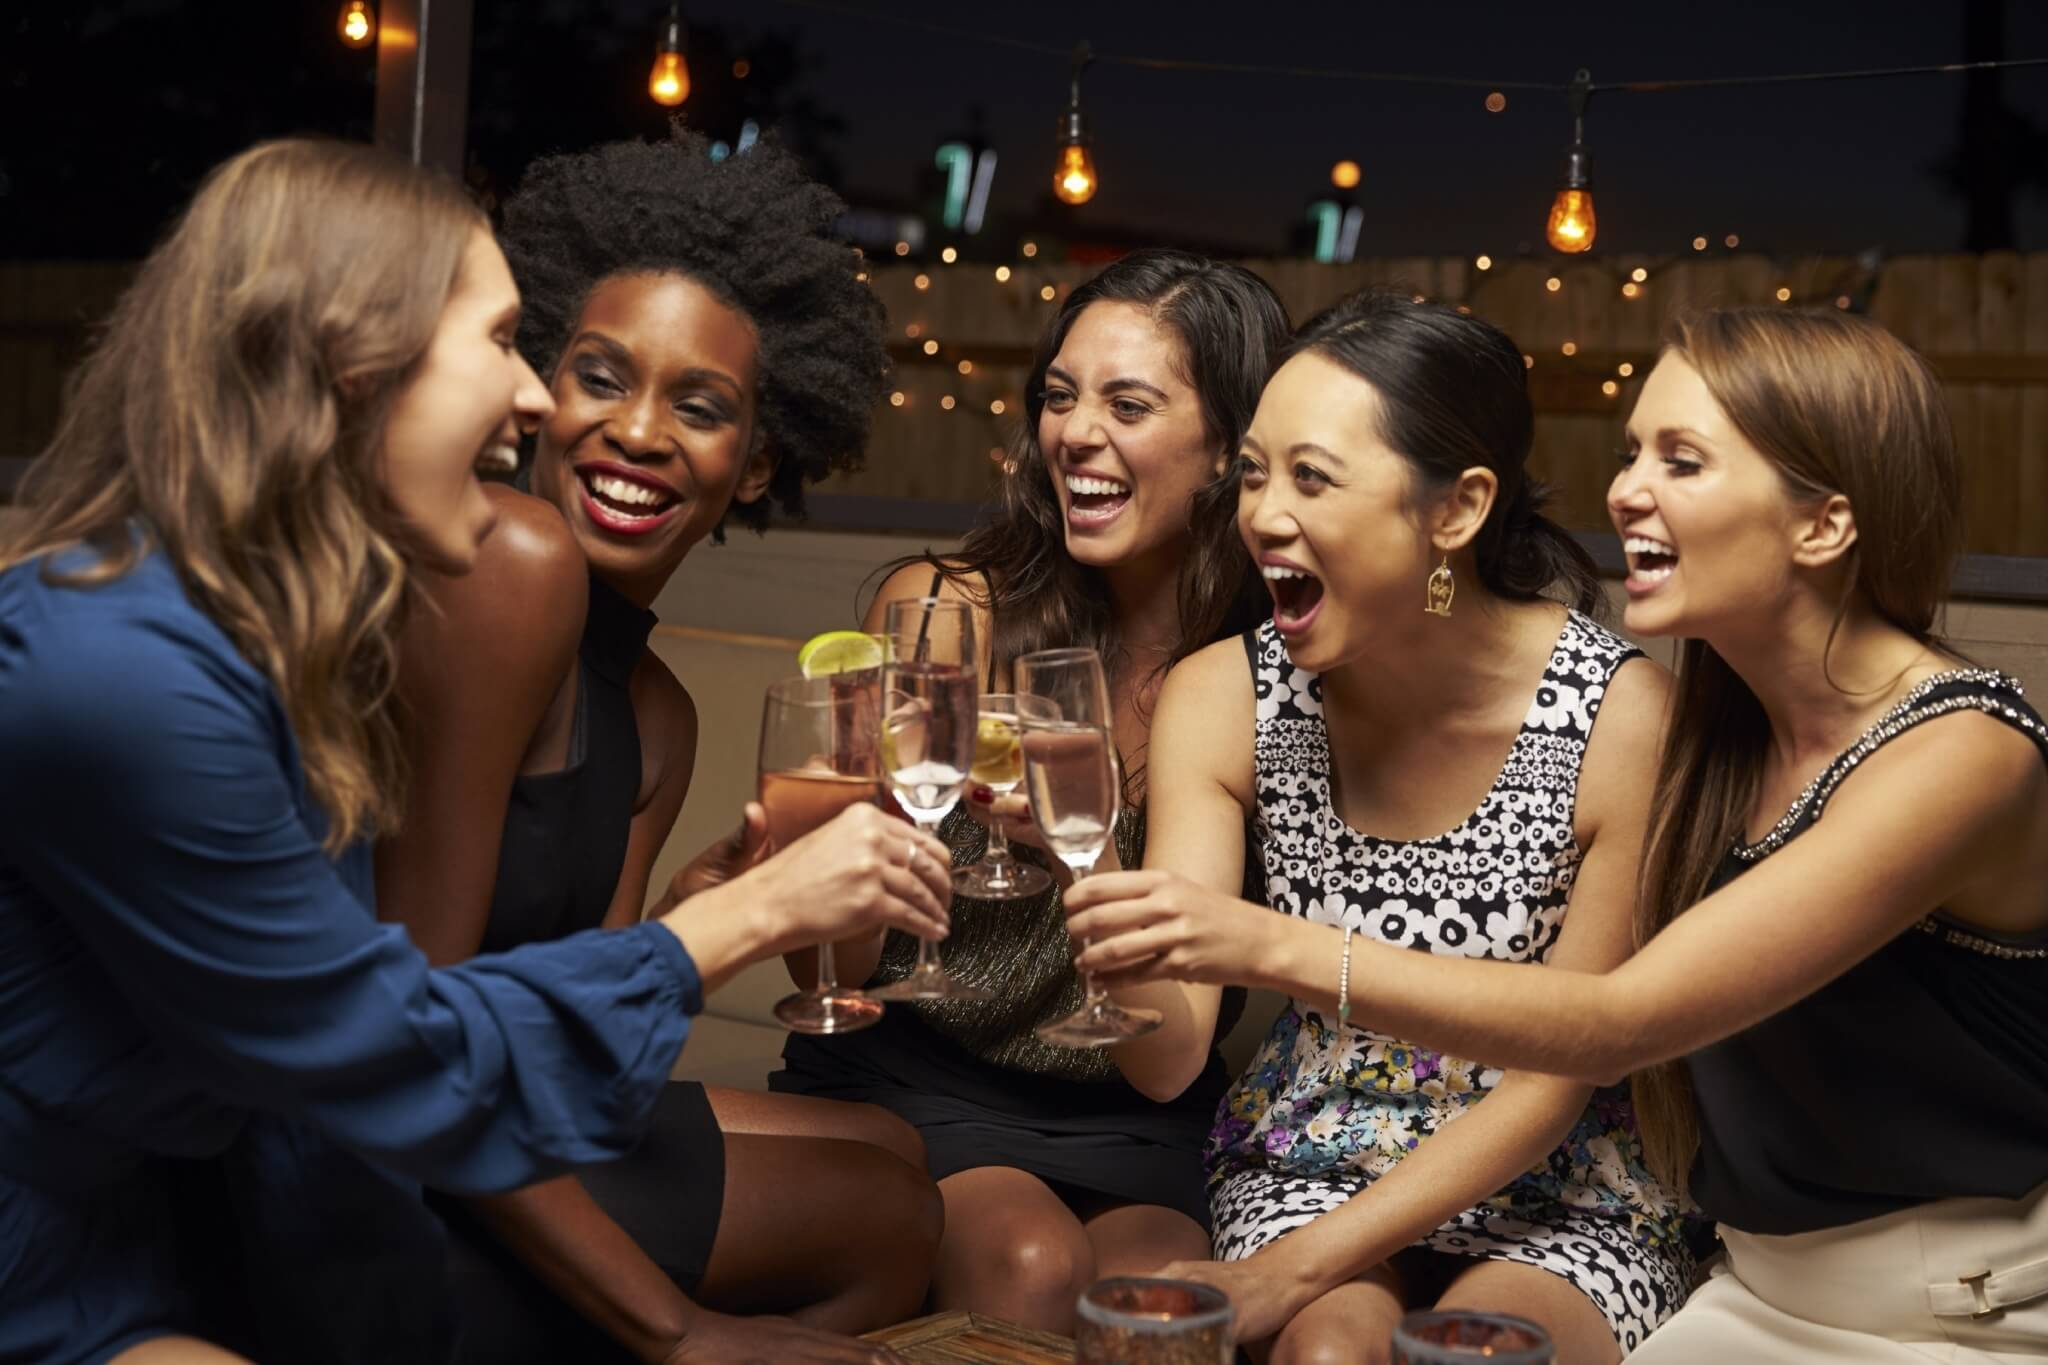 Group-Of-Female-Friends-Enjoying-Night-Out-At-Rooftop-Bar-000083961111_Large.jpg.jpeg